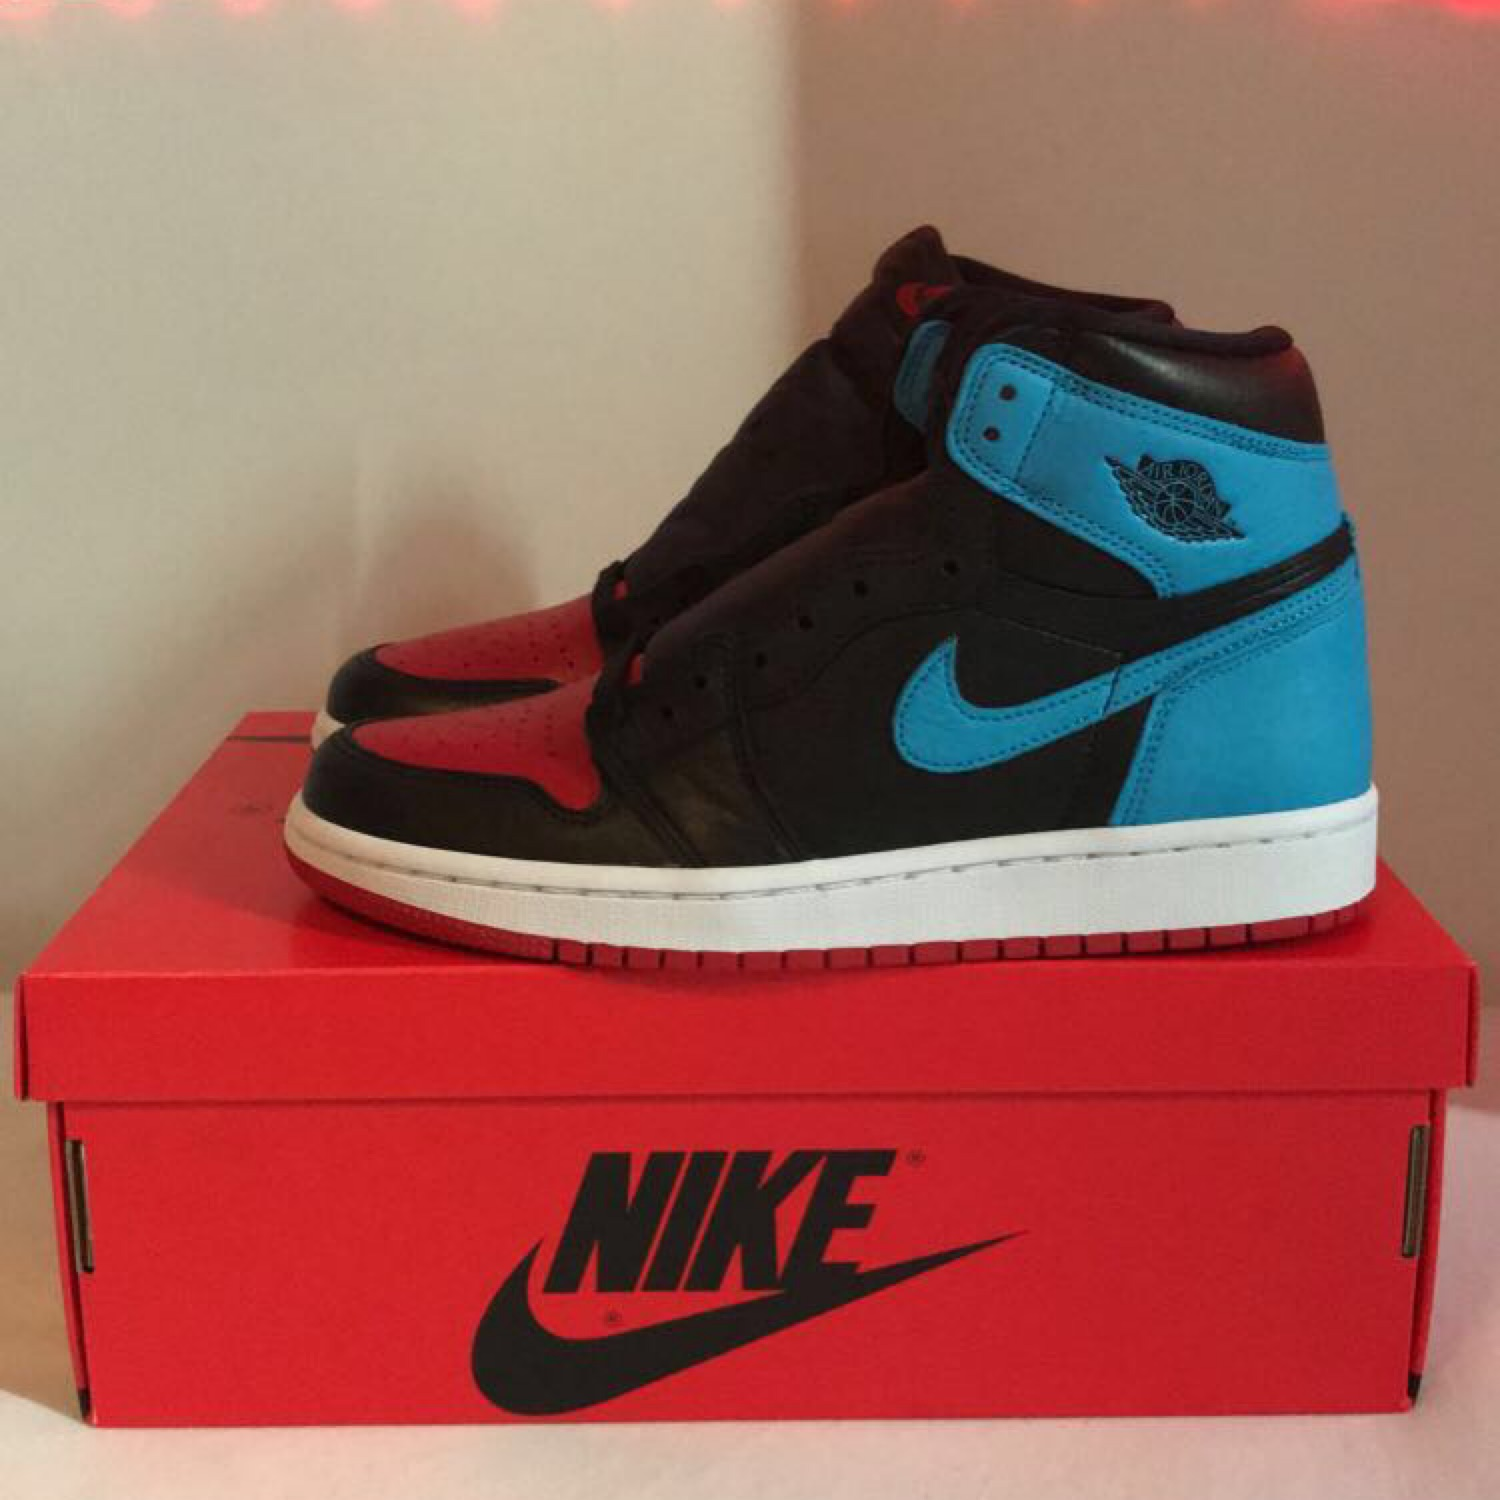 Jordan 1 Retro high UNC Chicago Leather (W)